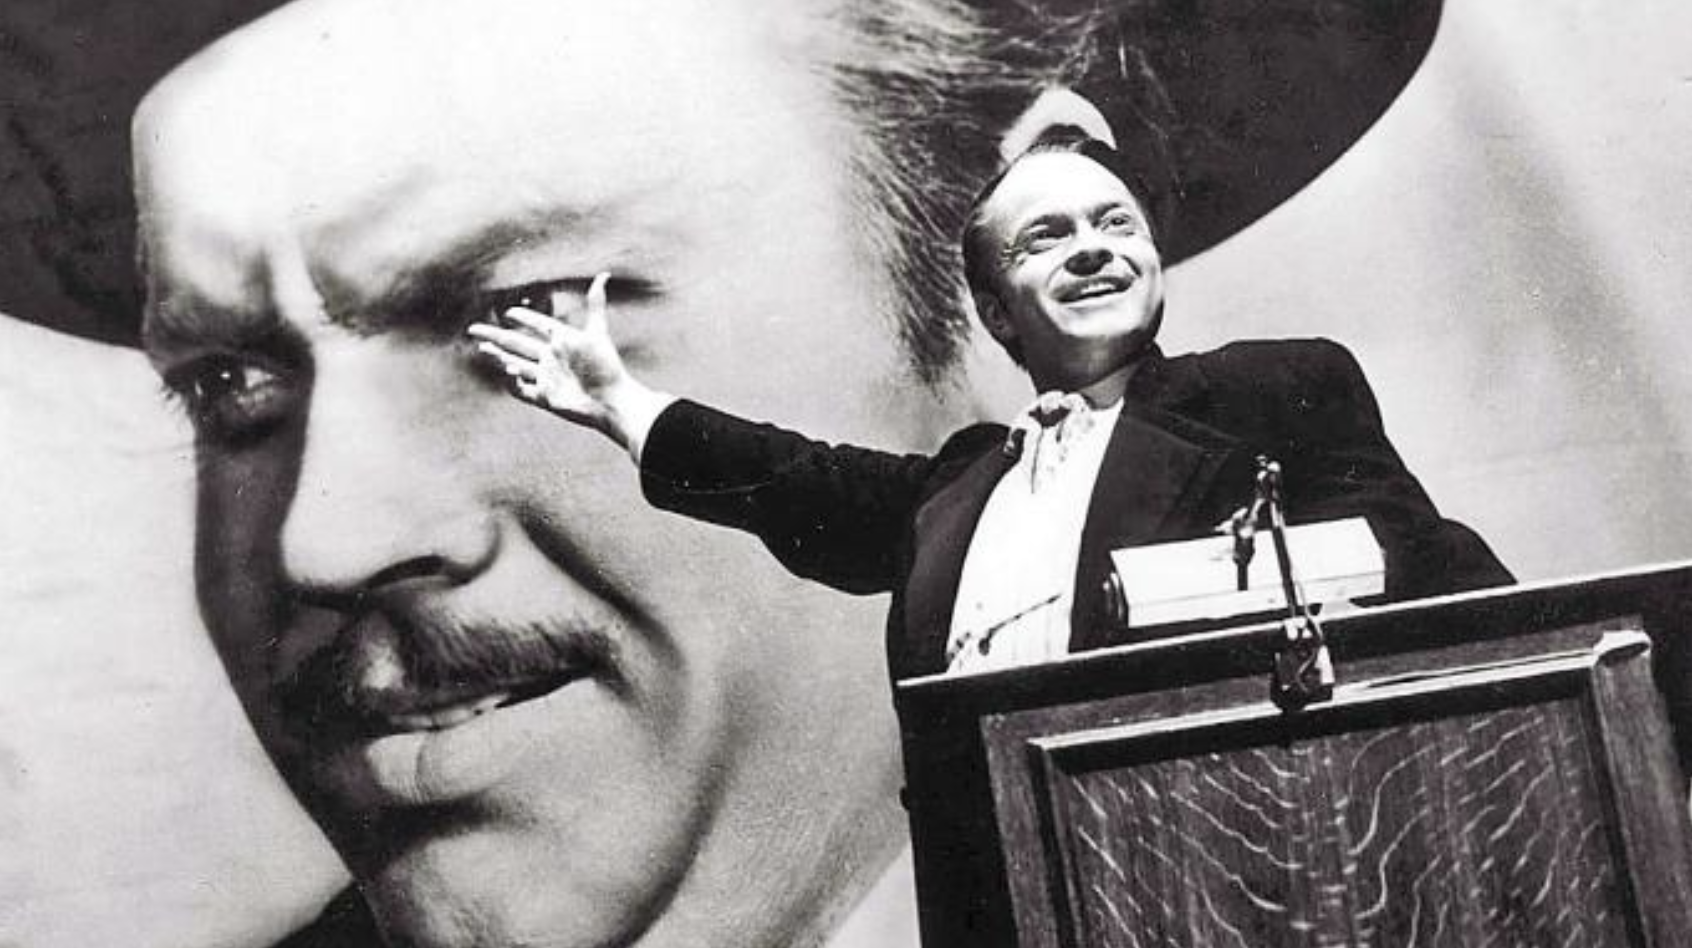 A still from Citizen Kane, regularly voted the greatest movie of all time.